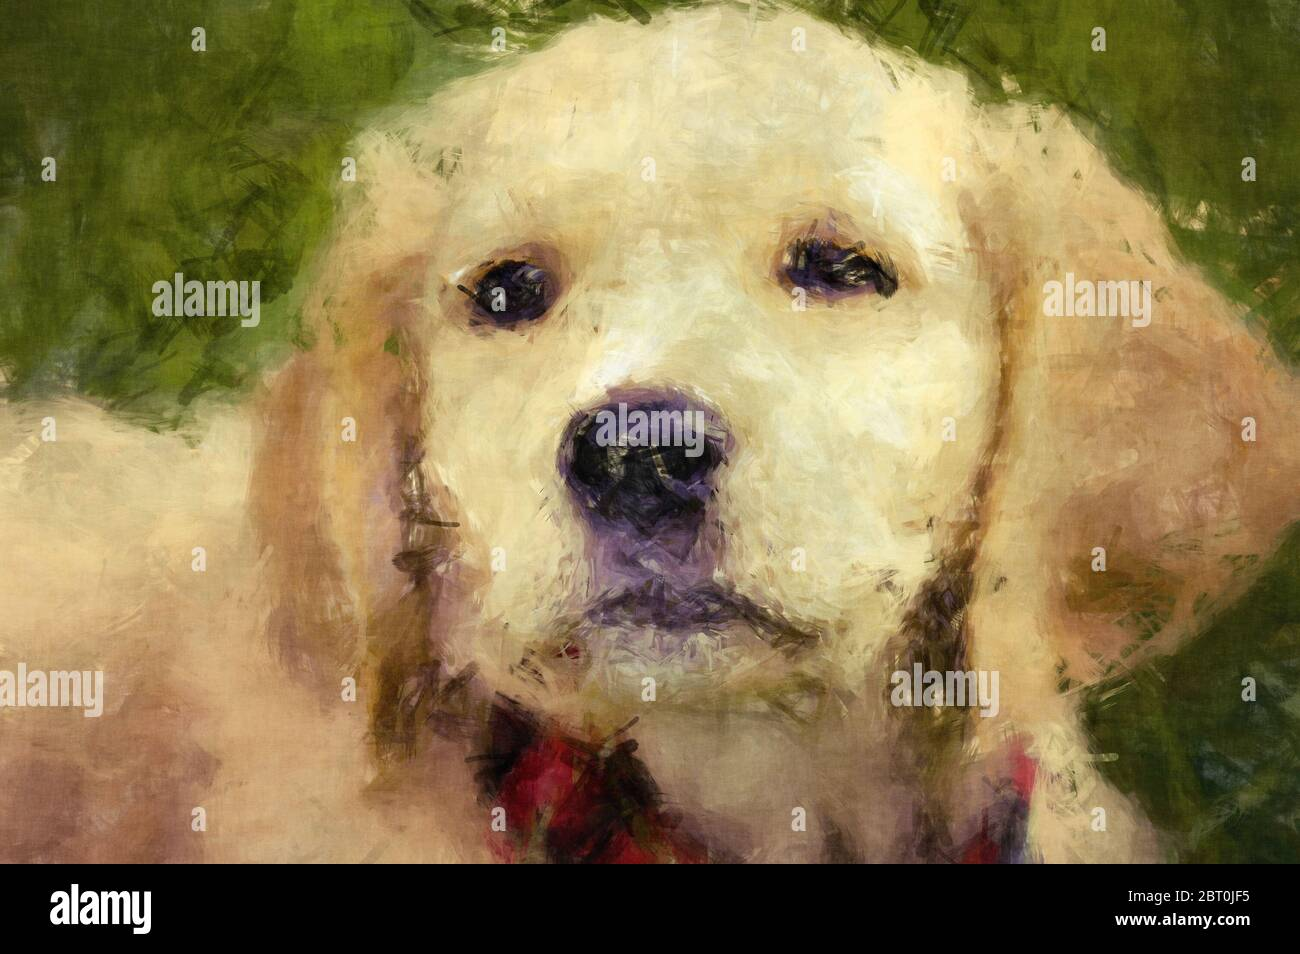 Wall Art Painterly Of A Golden Retriever Puppy Stock Photo Alamy